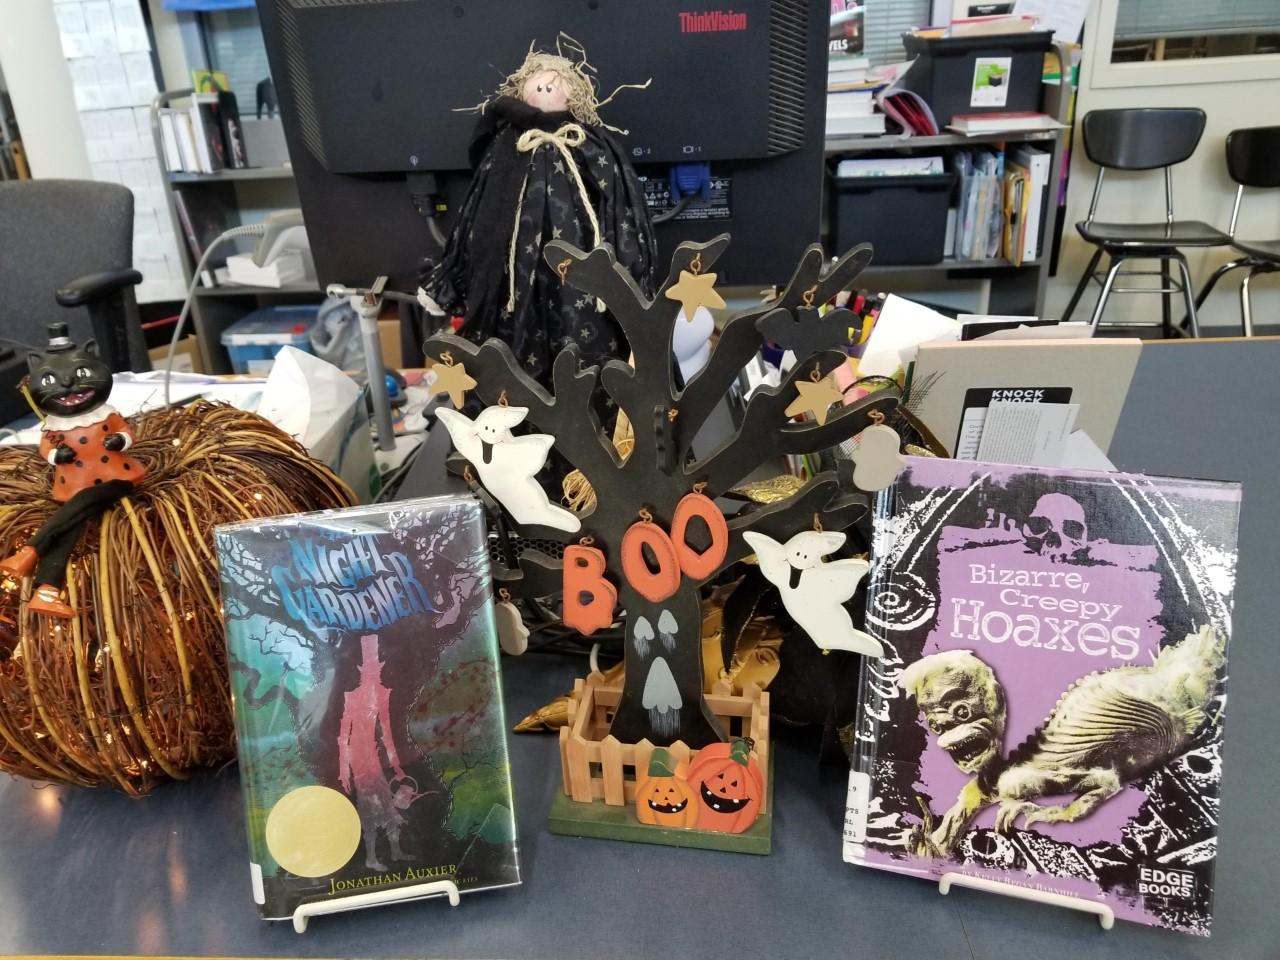 Come see our spooky reads!